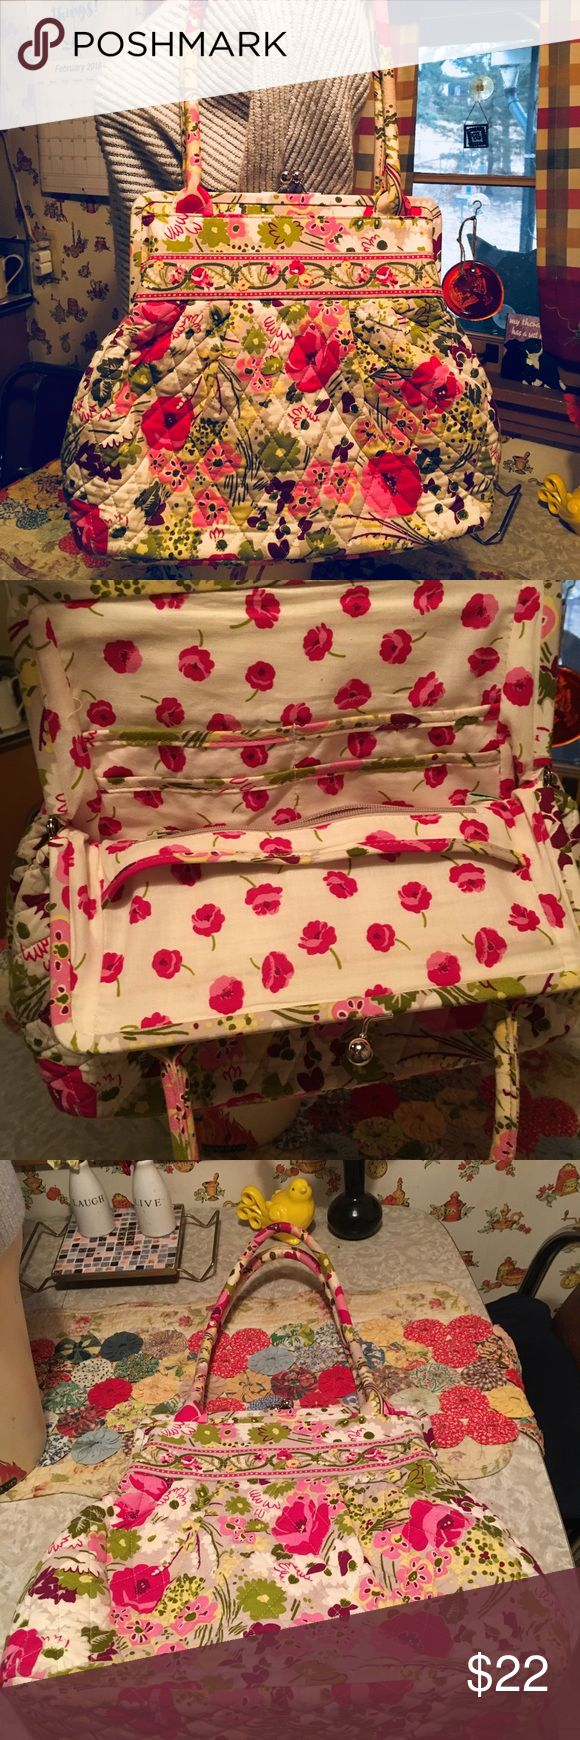 Vera Bradley beautiful floral shoulder bag! Vera Bradley new floral shoulder bag!  So many pockets inside and out to keep you organized!  Perfect spring/summer bag! Vera Bradley Bags Shoulder Bags